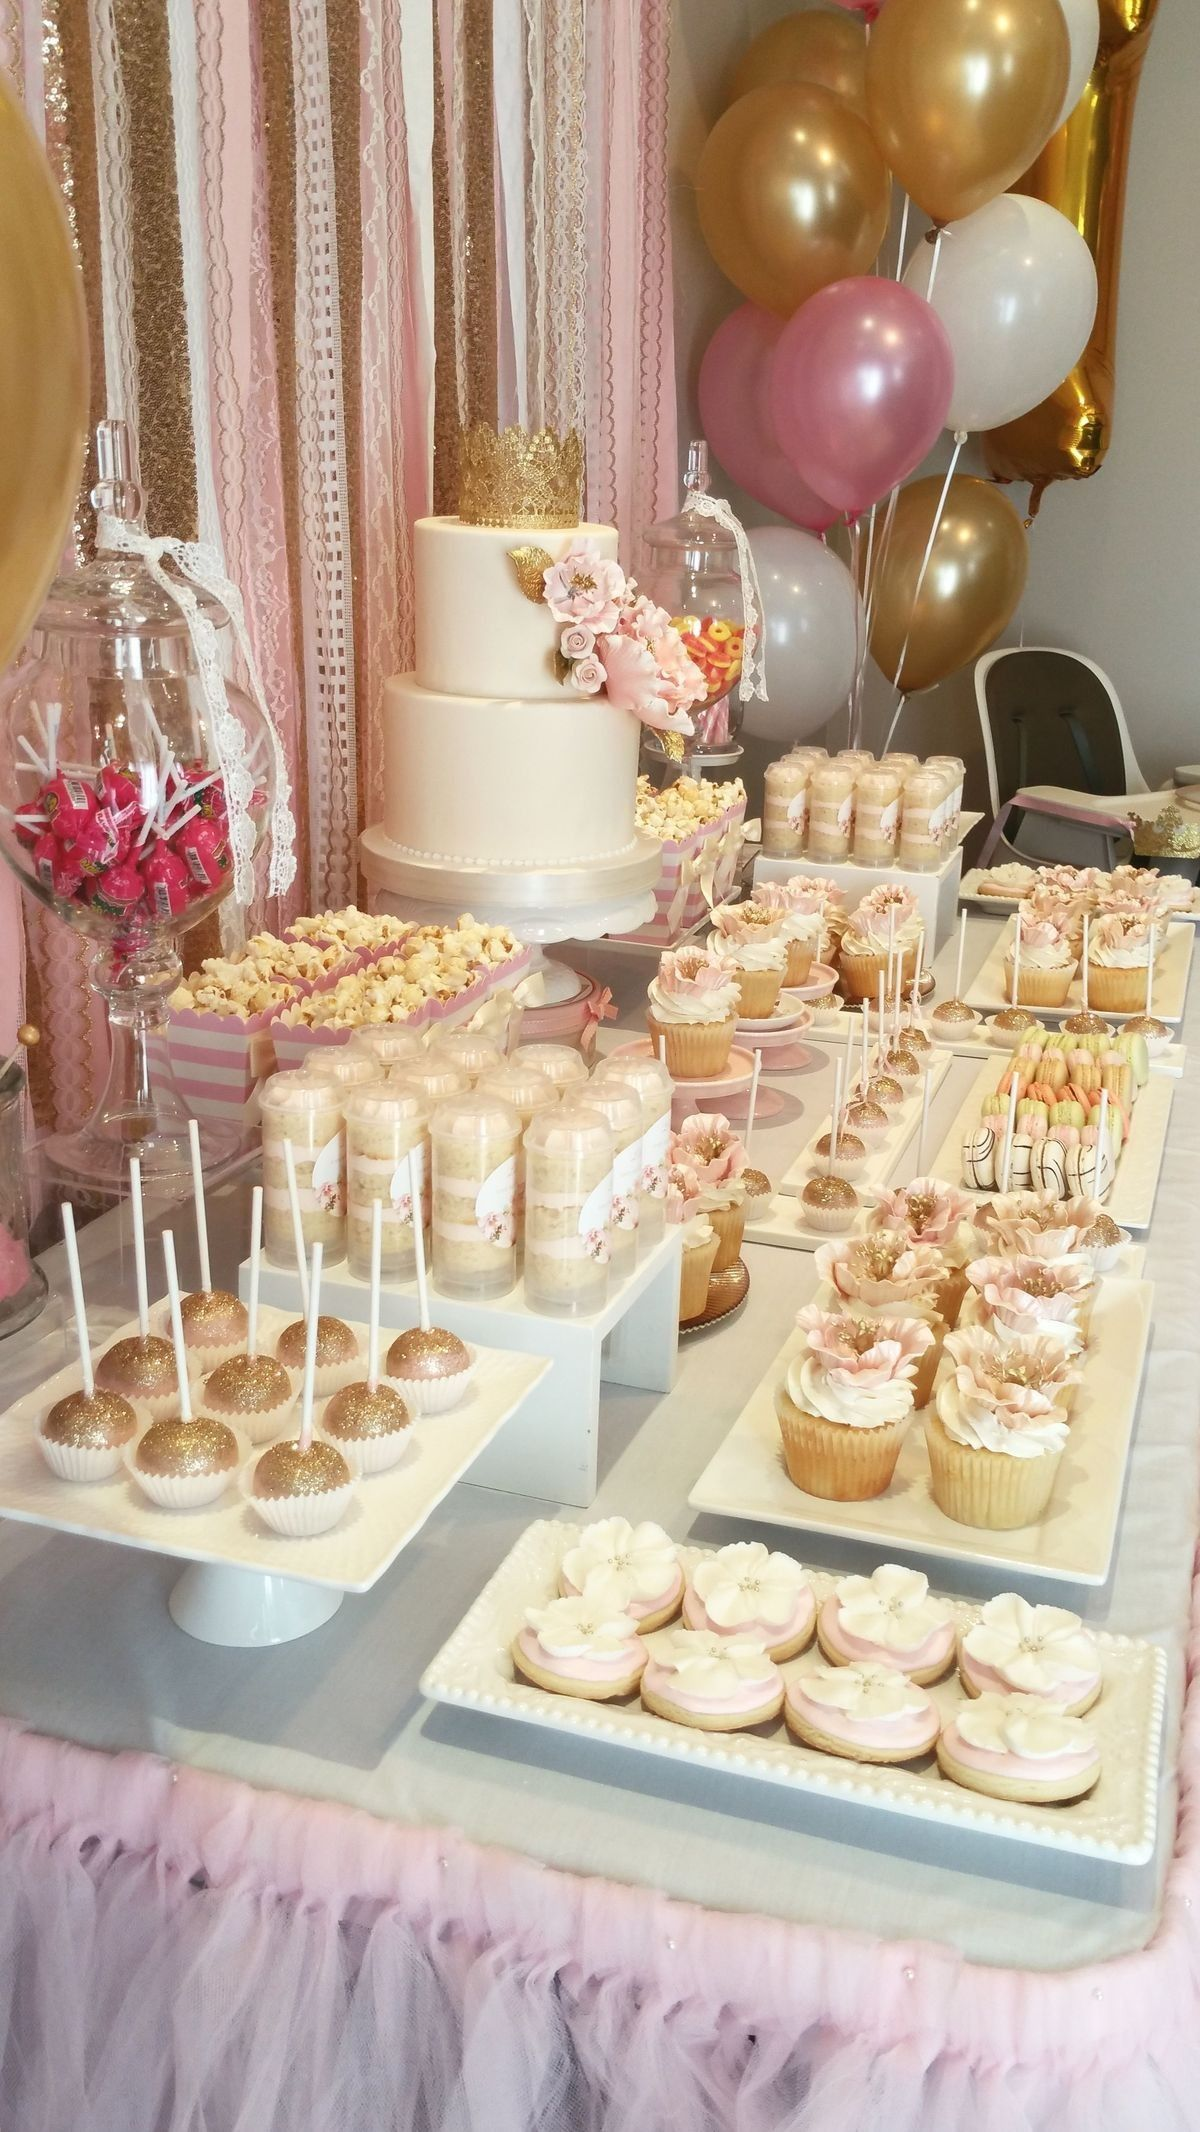 21st Birthday Parties 18th Decor Party Ideas Decoration Bday